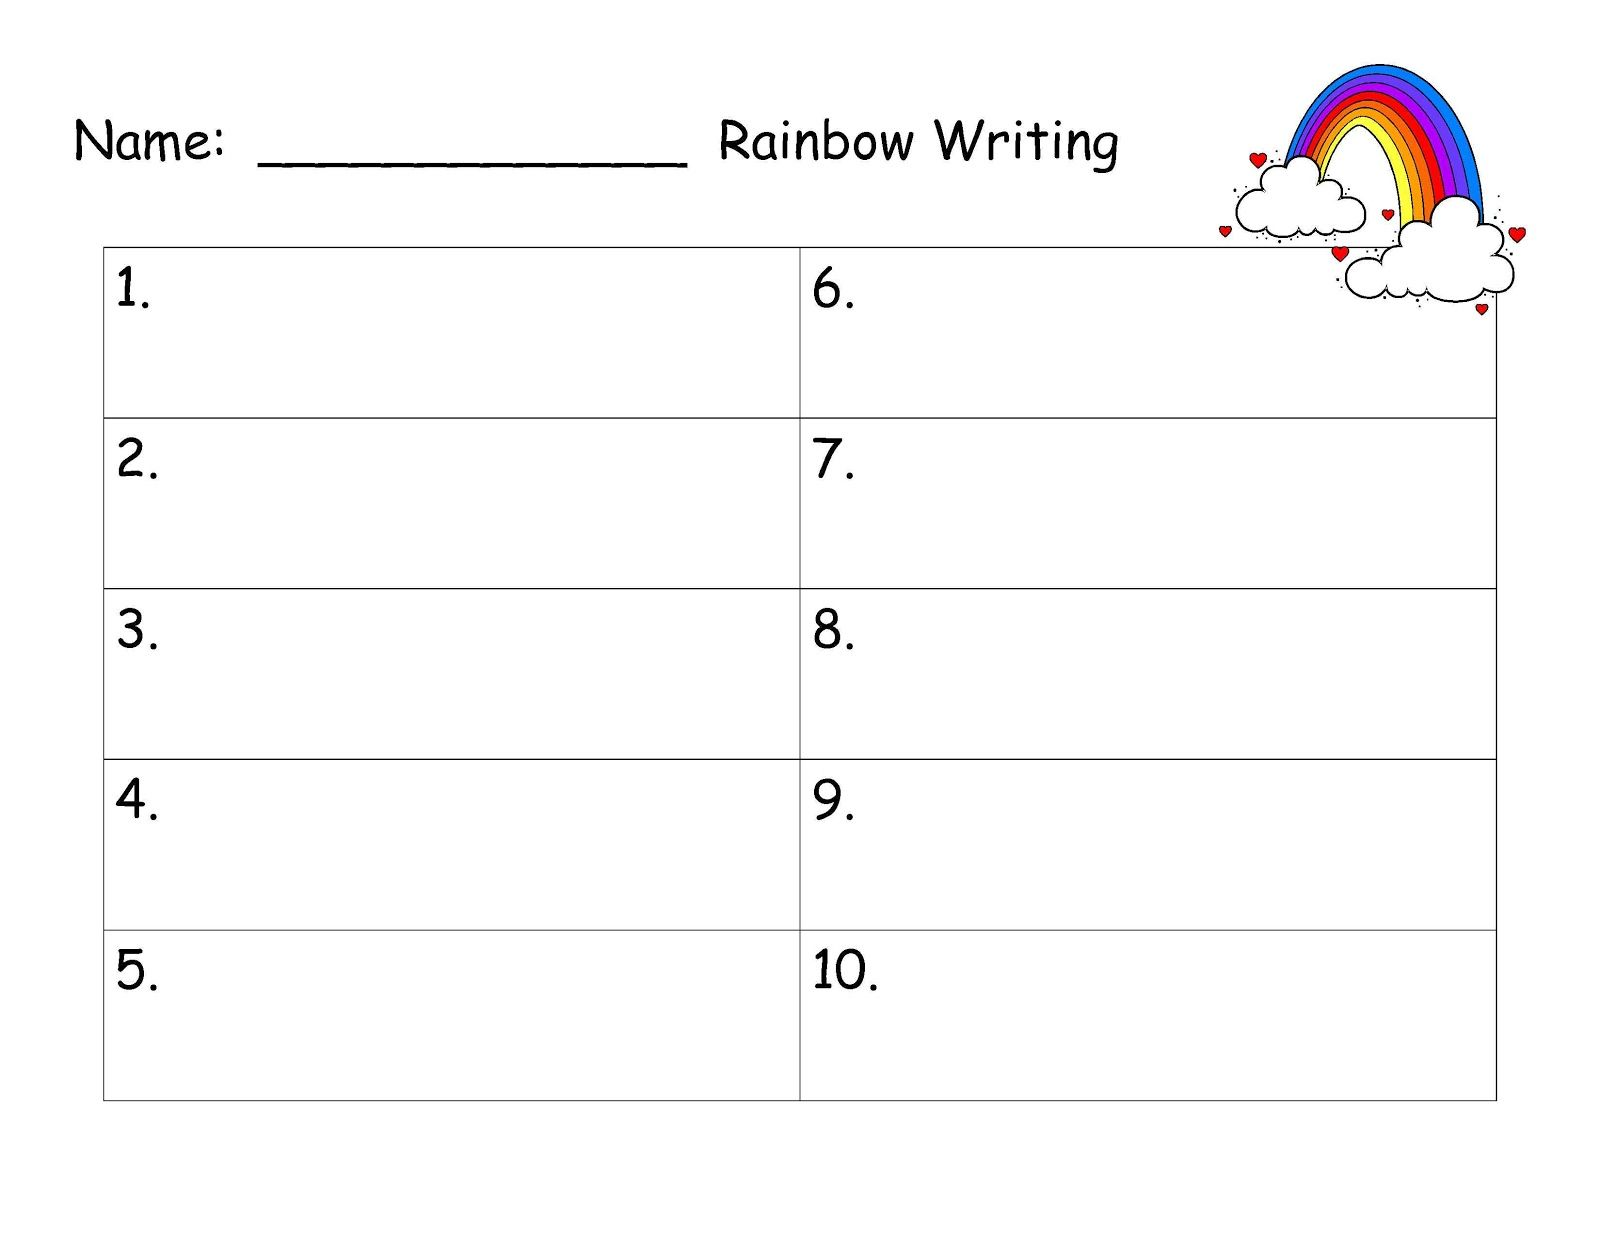 Rainbow+Writing+Spelling+Words+Template | grade 1 | Pinterest